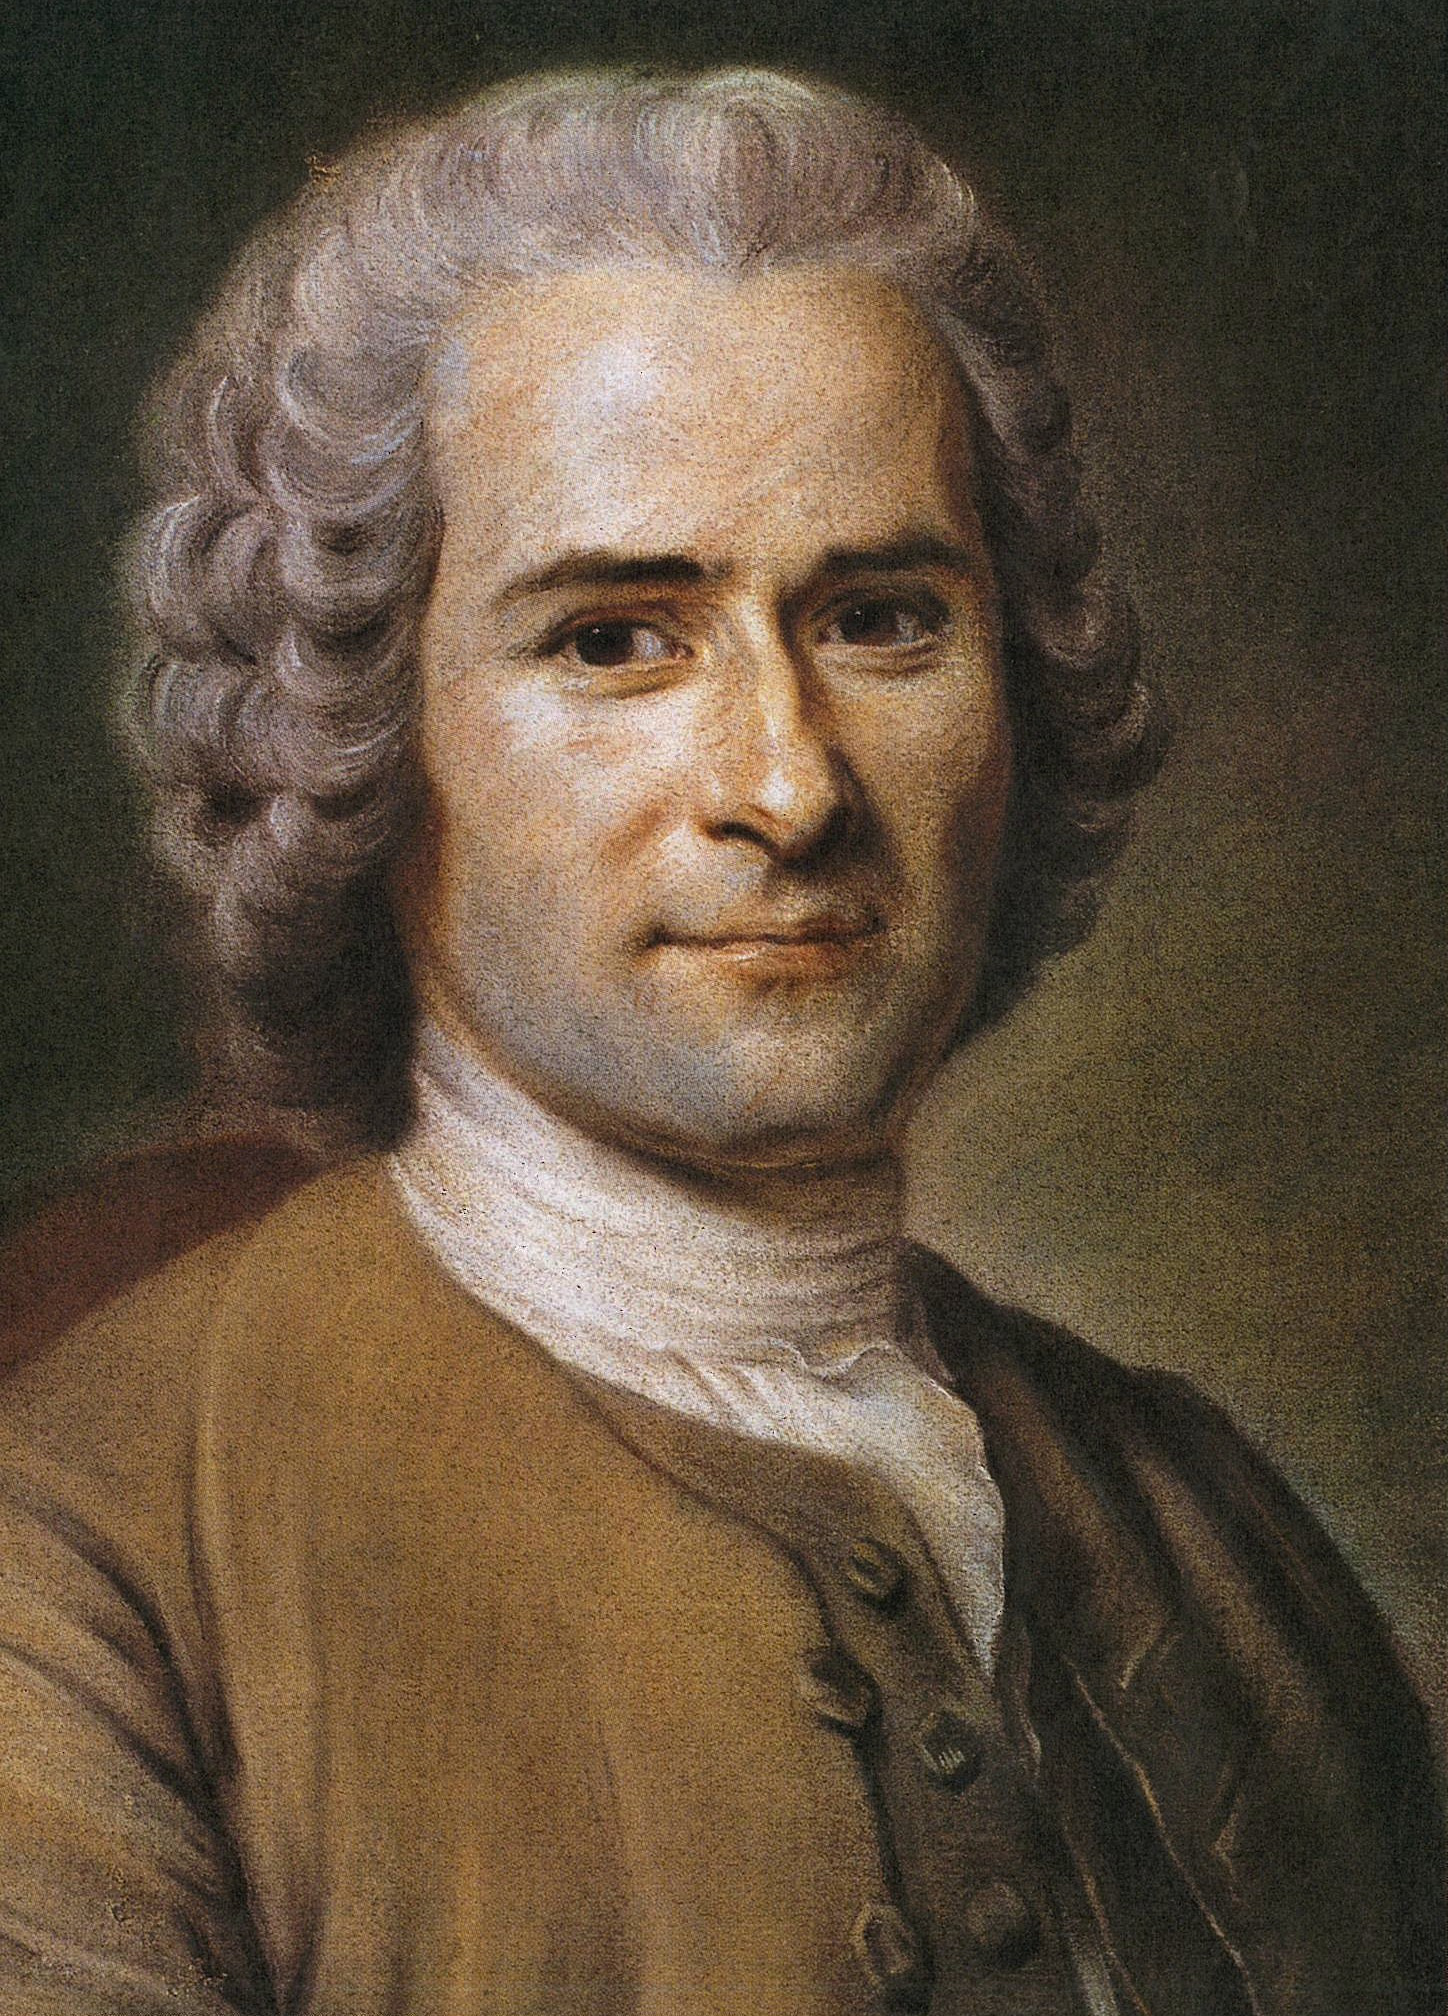 Jean-Jacques_Rousseau_(painted_portrait).jpg